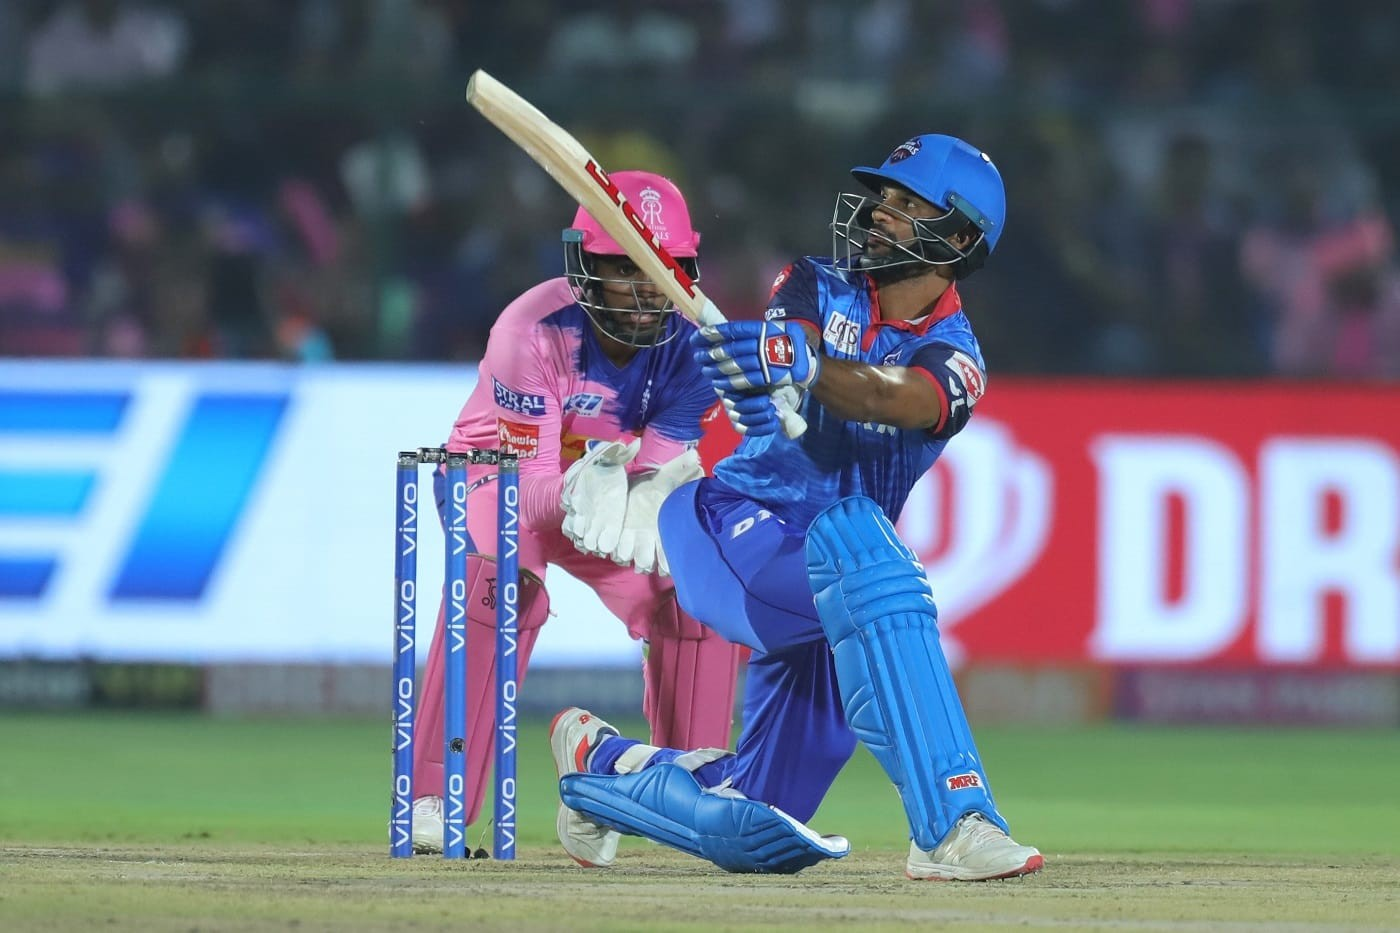 Shikhar-Dhawan-swept-Shreyas-Gopals-first-ball-for-six.jpg